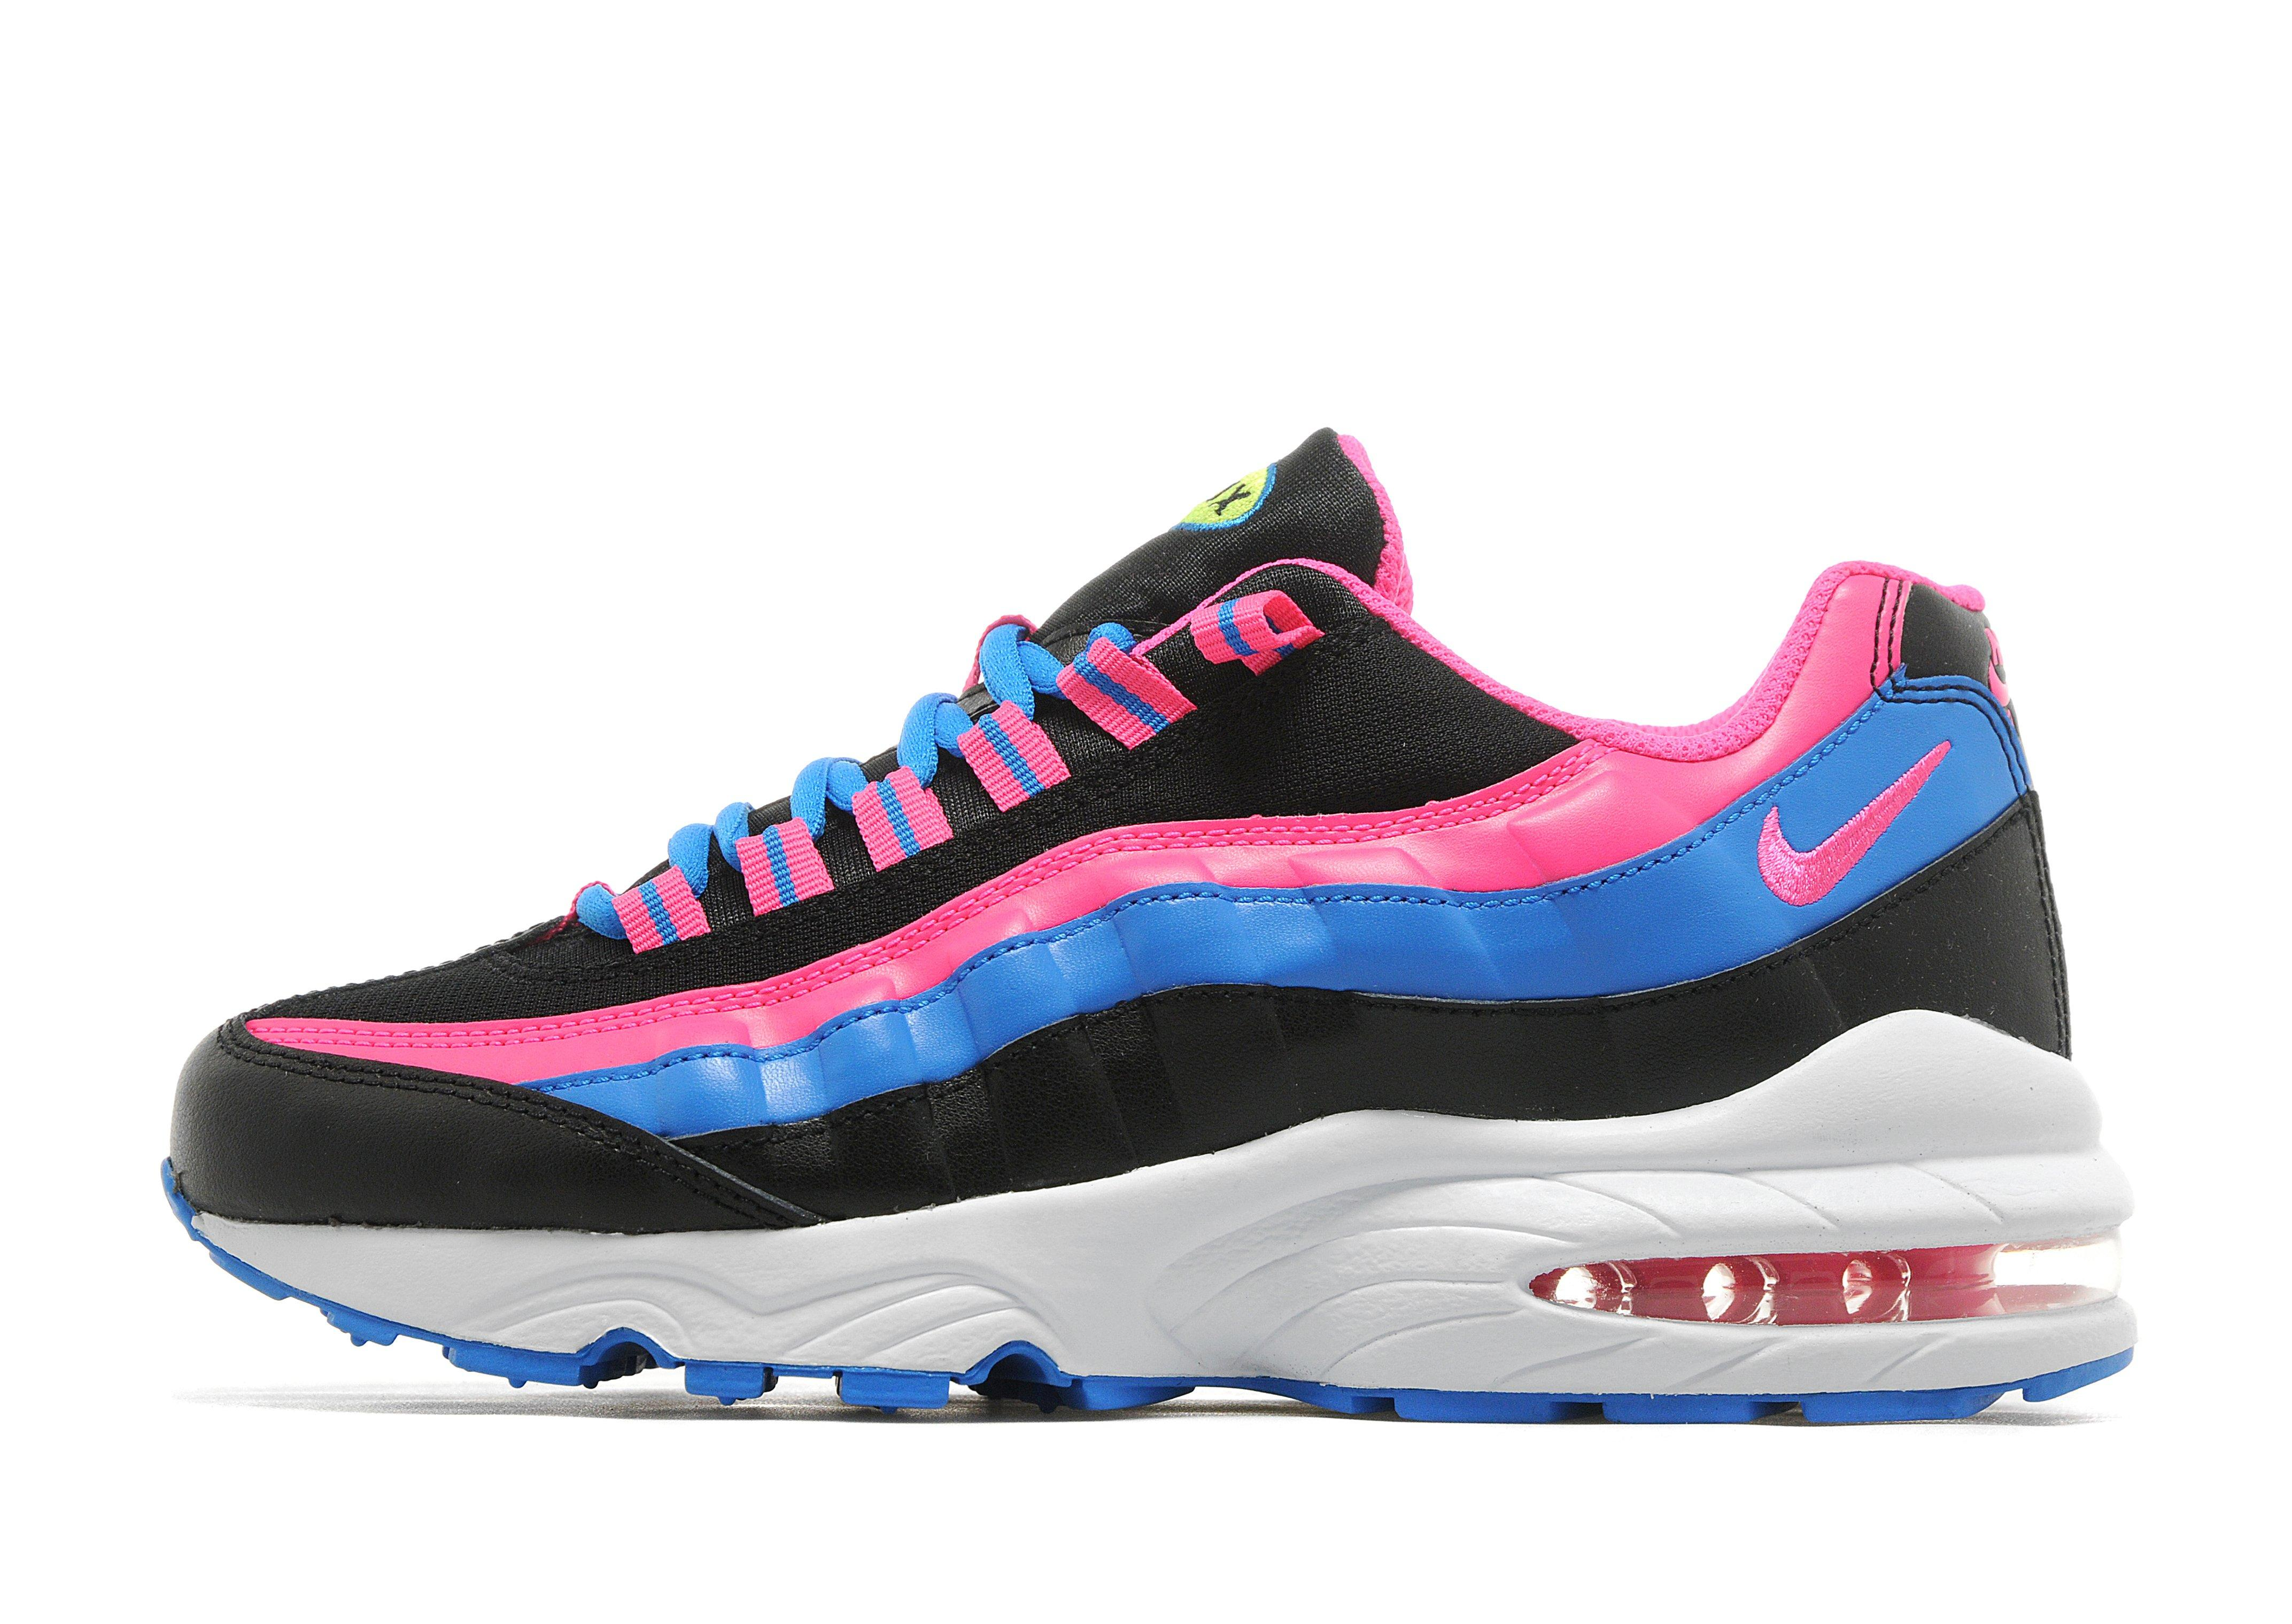 air max 95 blue and pink